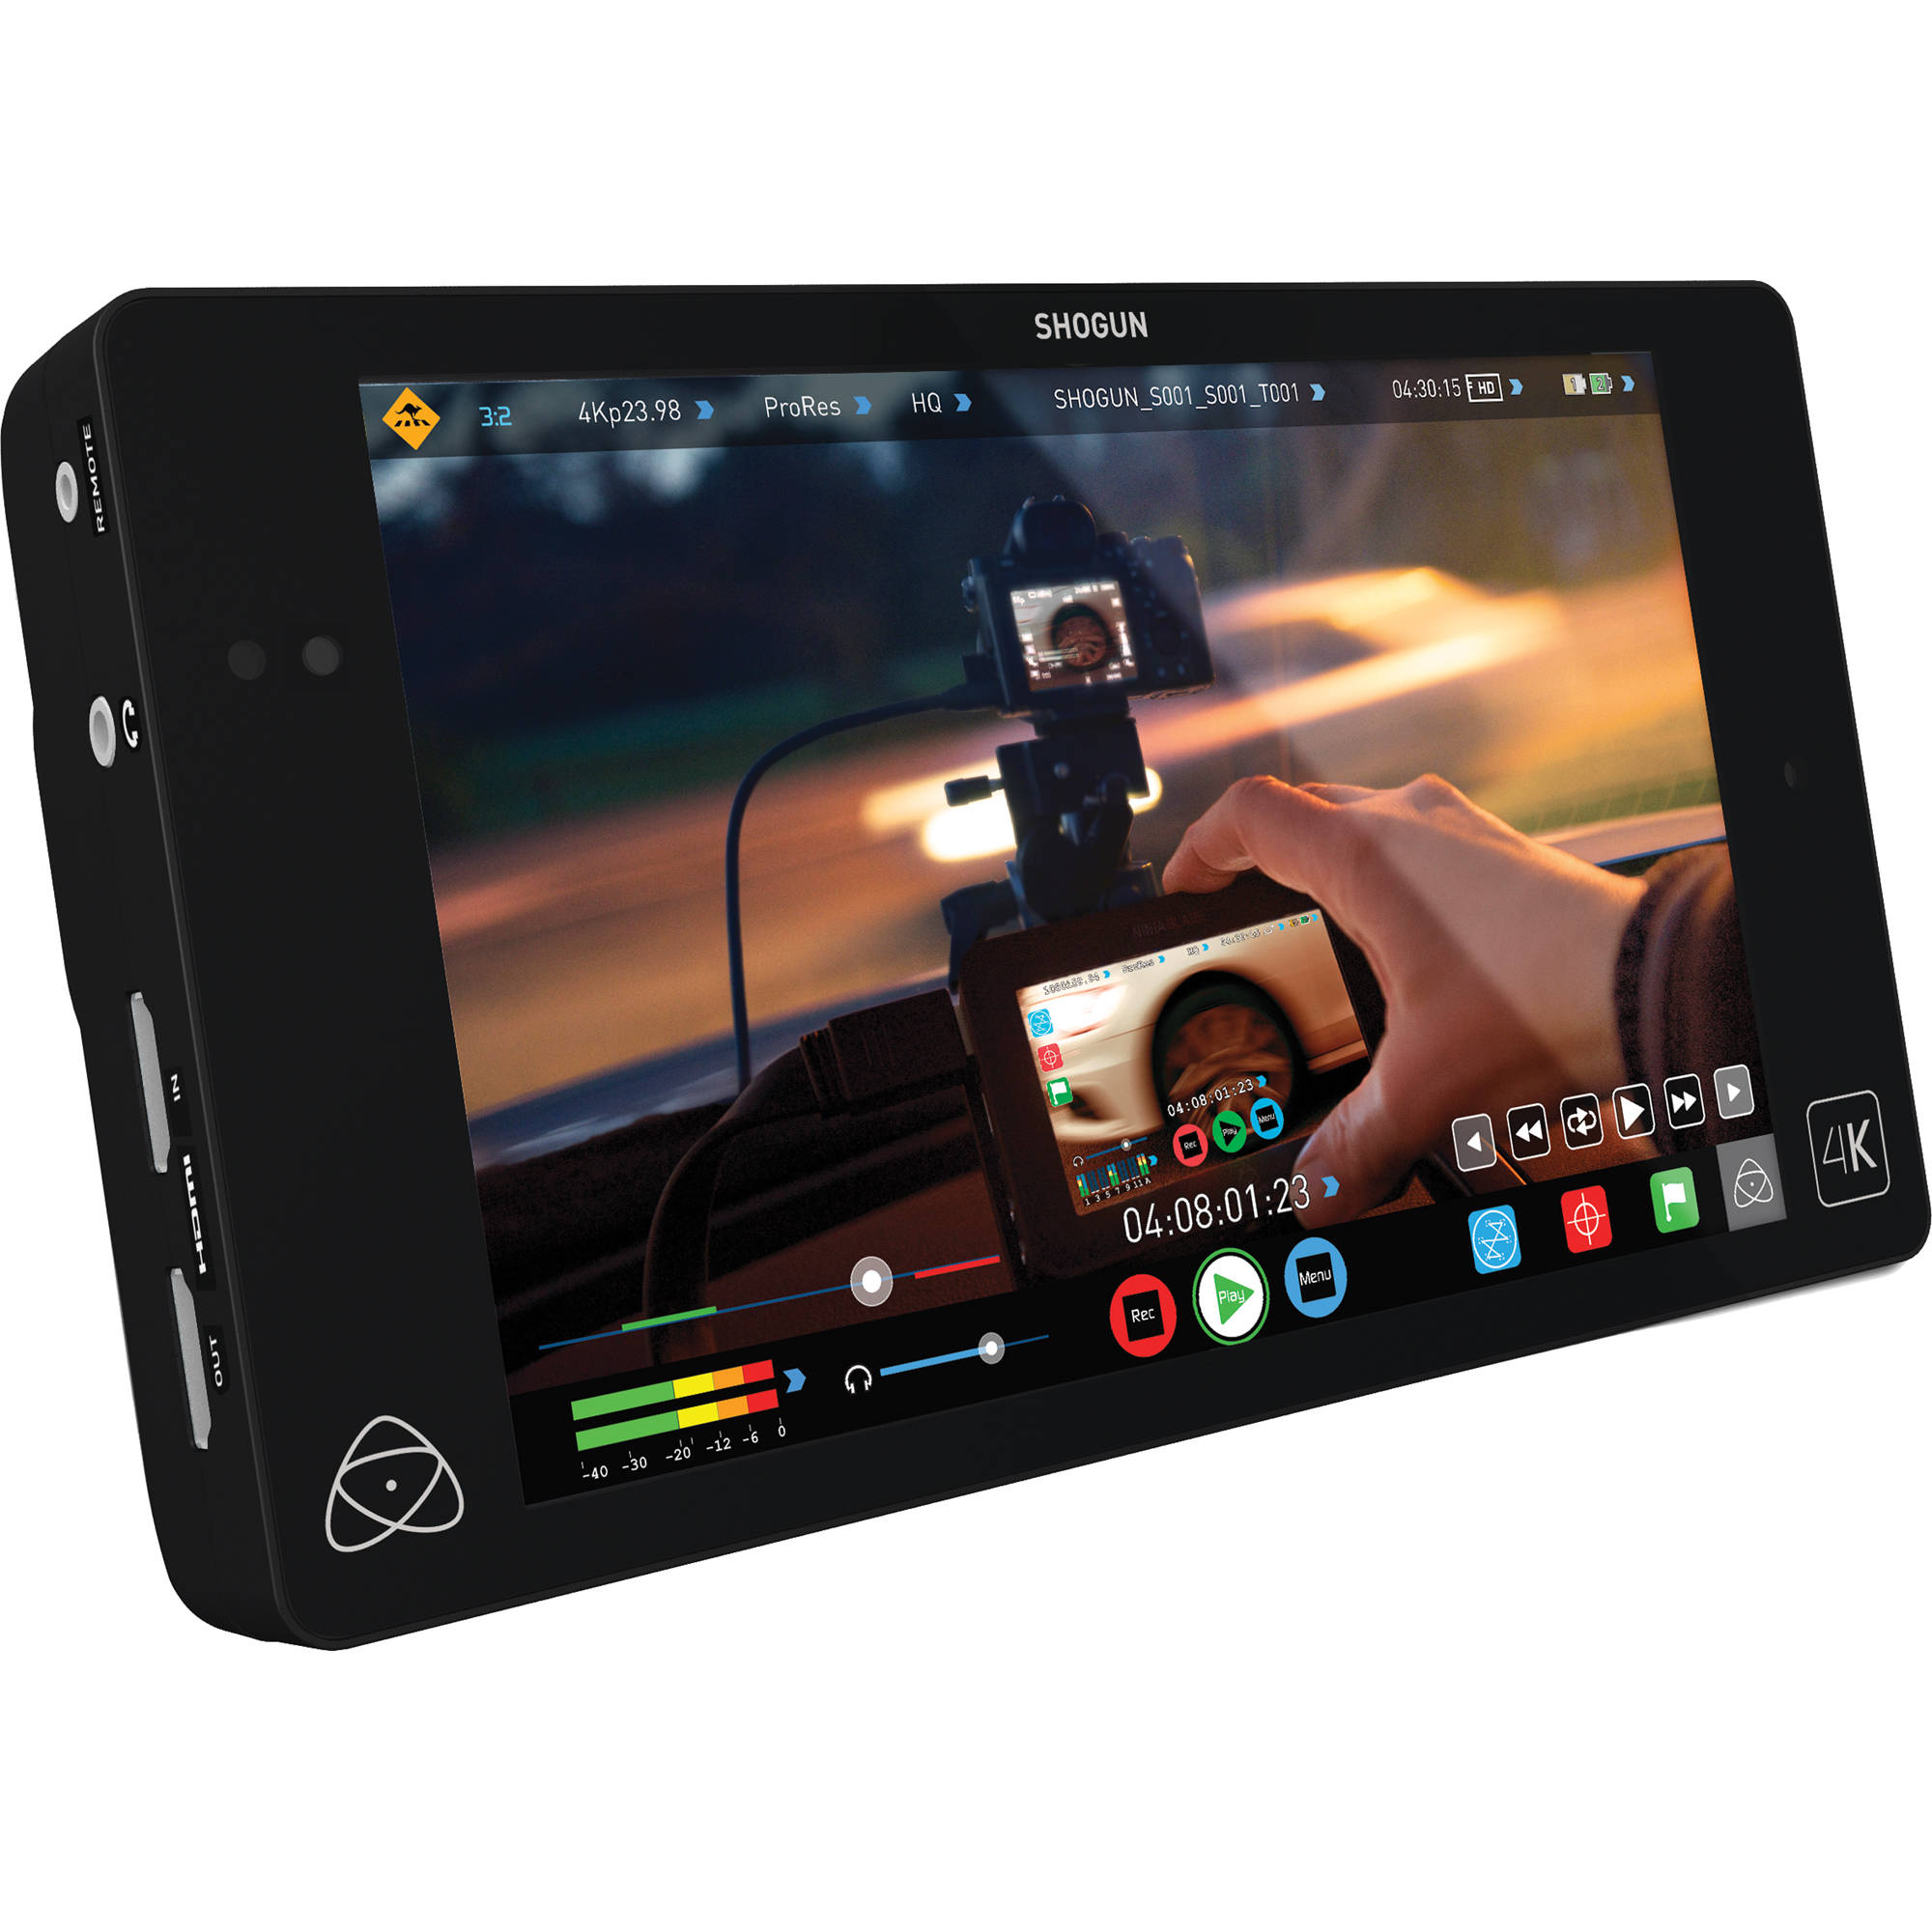 Atomos Shogun 4K HDMI/12G-SDI Recorder and 7 inch Monitor